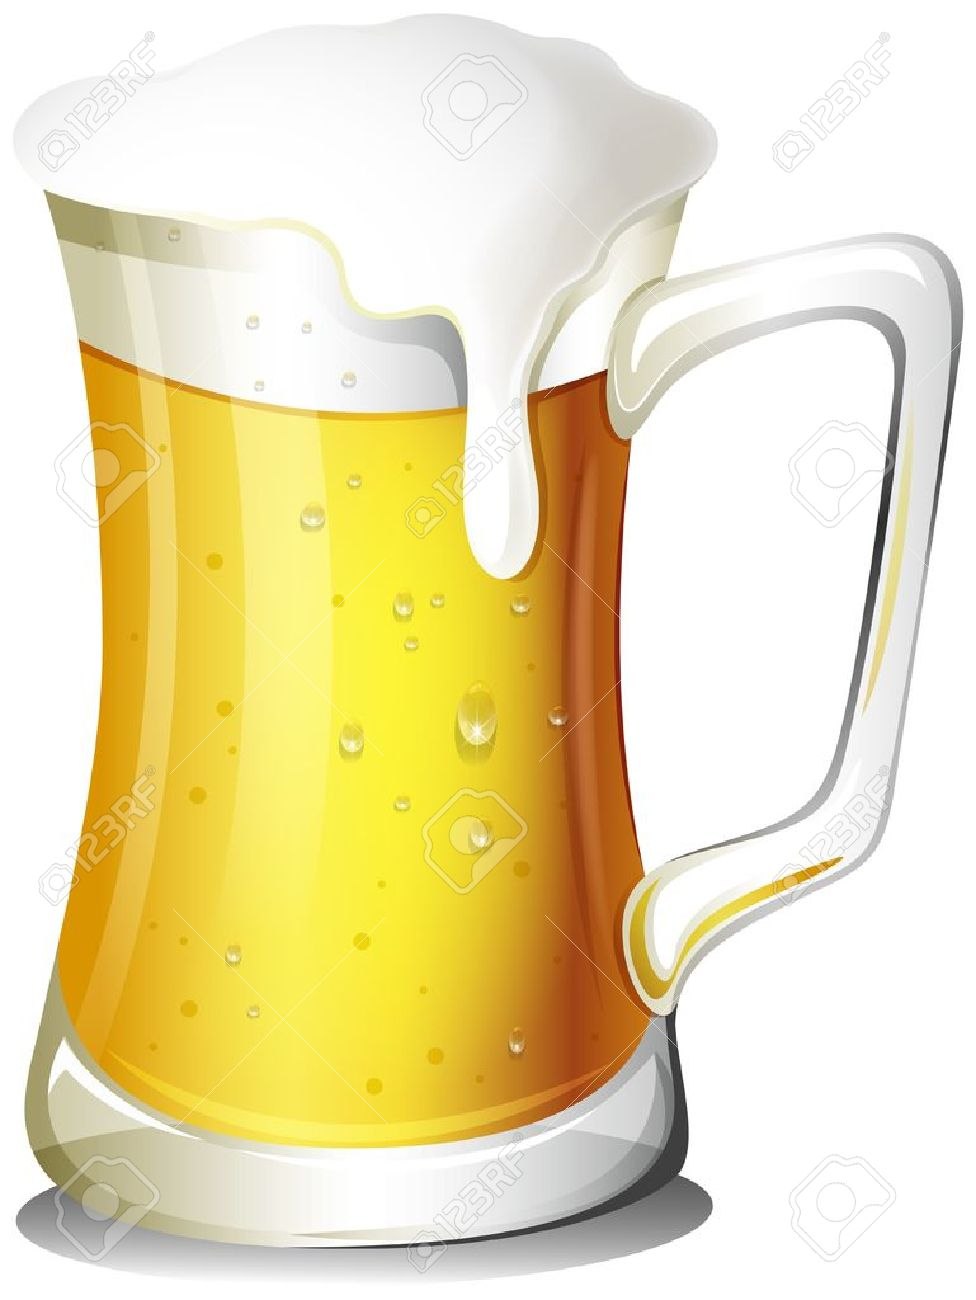 Illustration of a mug full of cold beer on a white background - 18610642